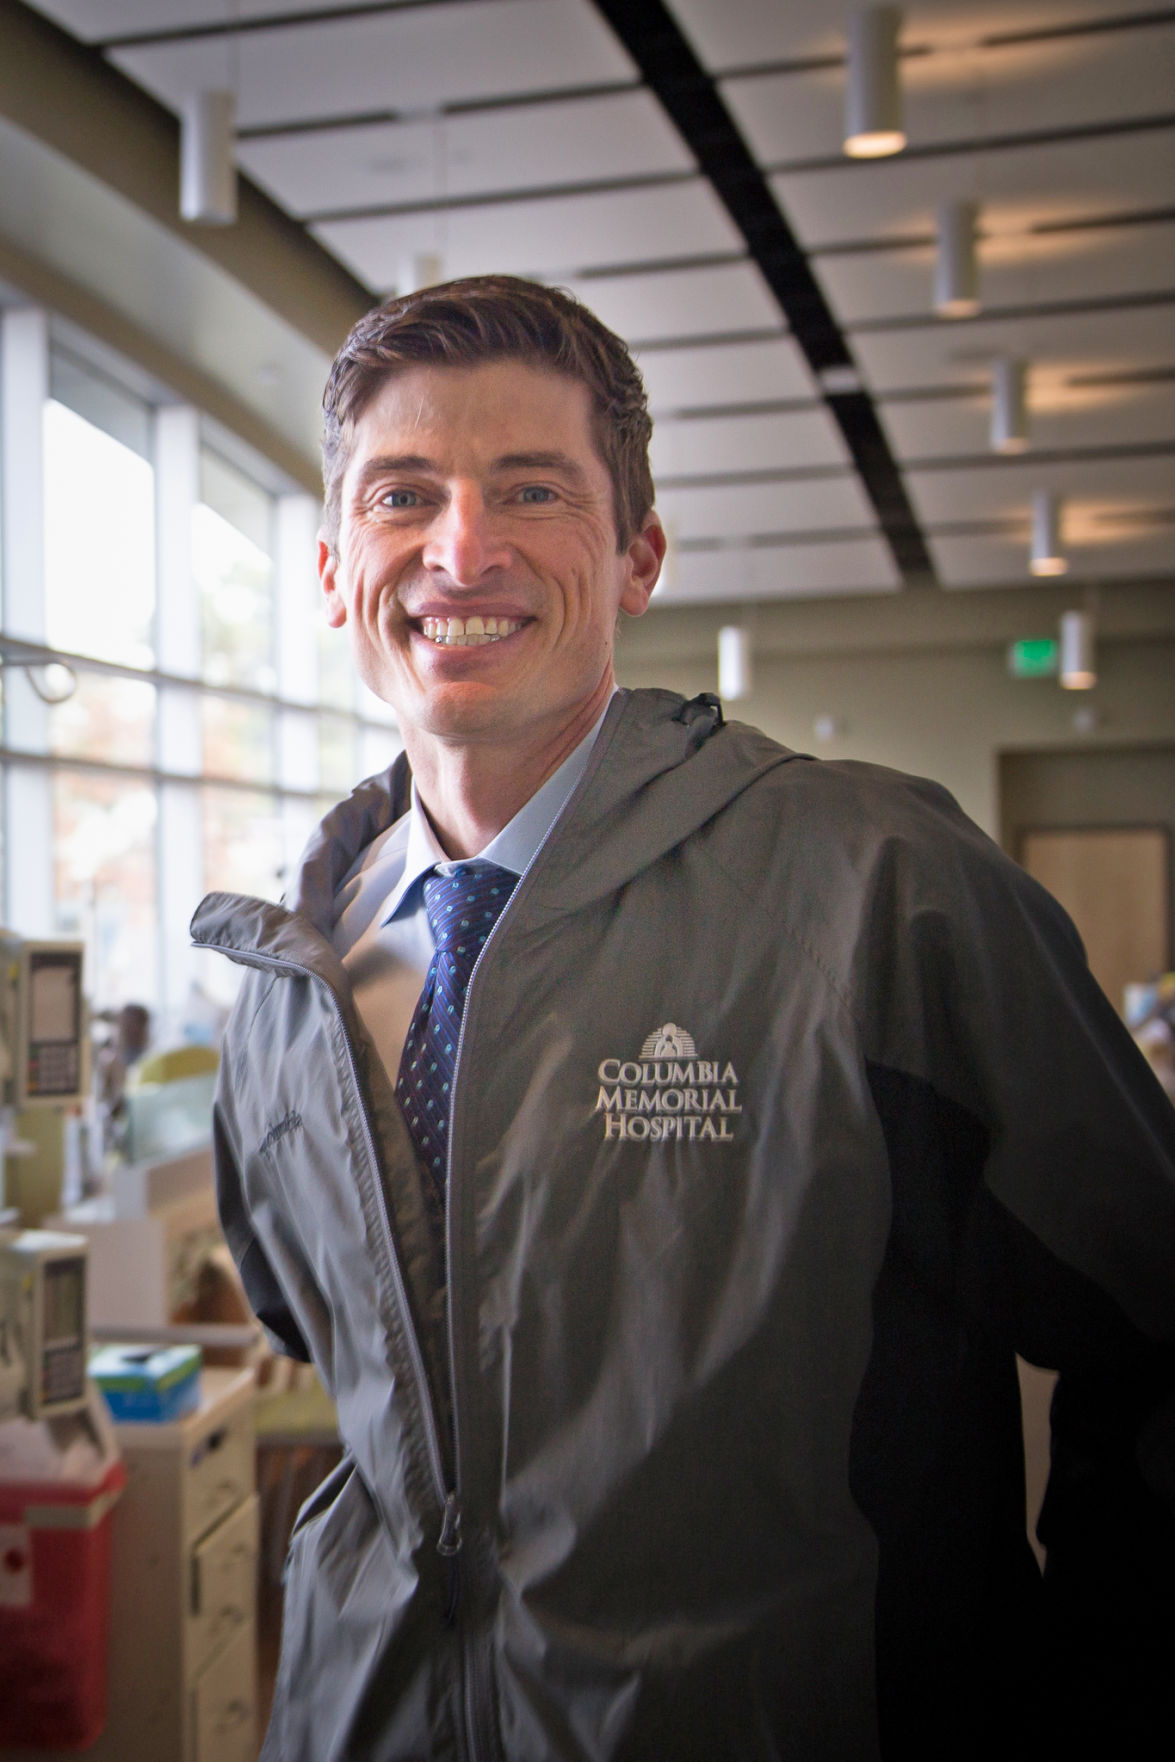 Chris Laman is the director of pharmacy